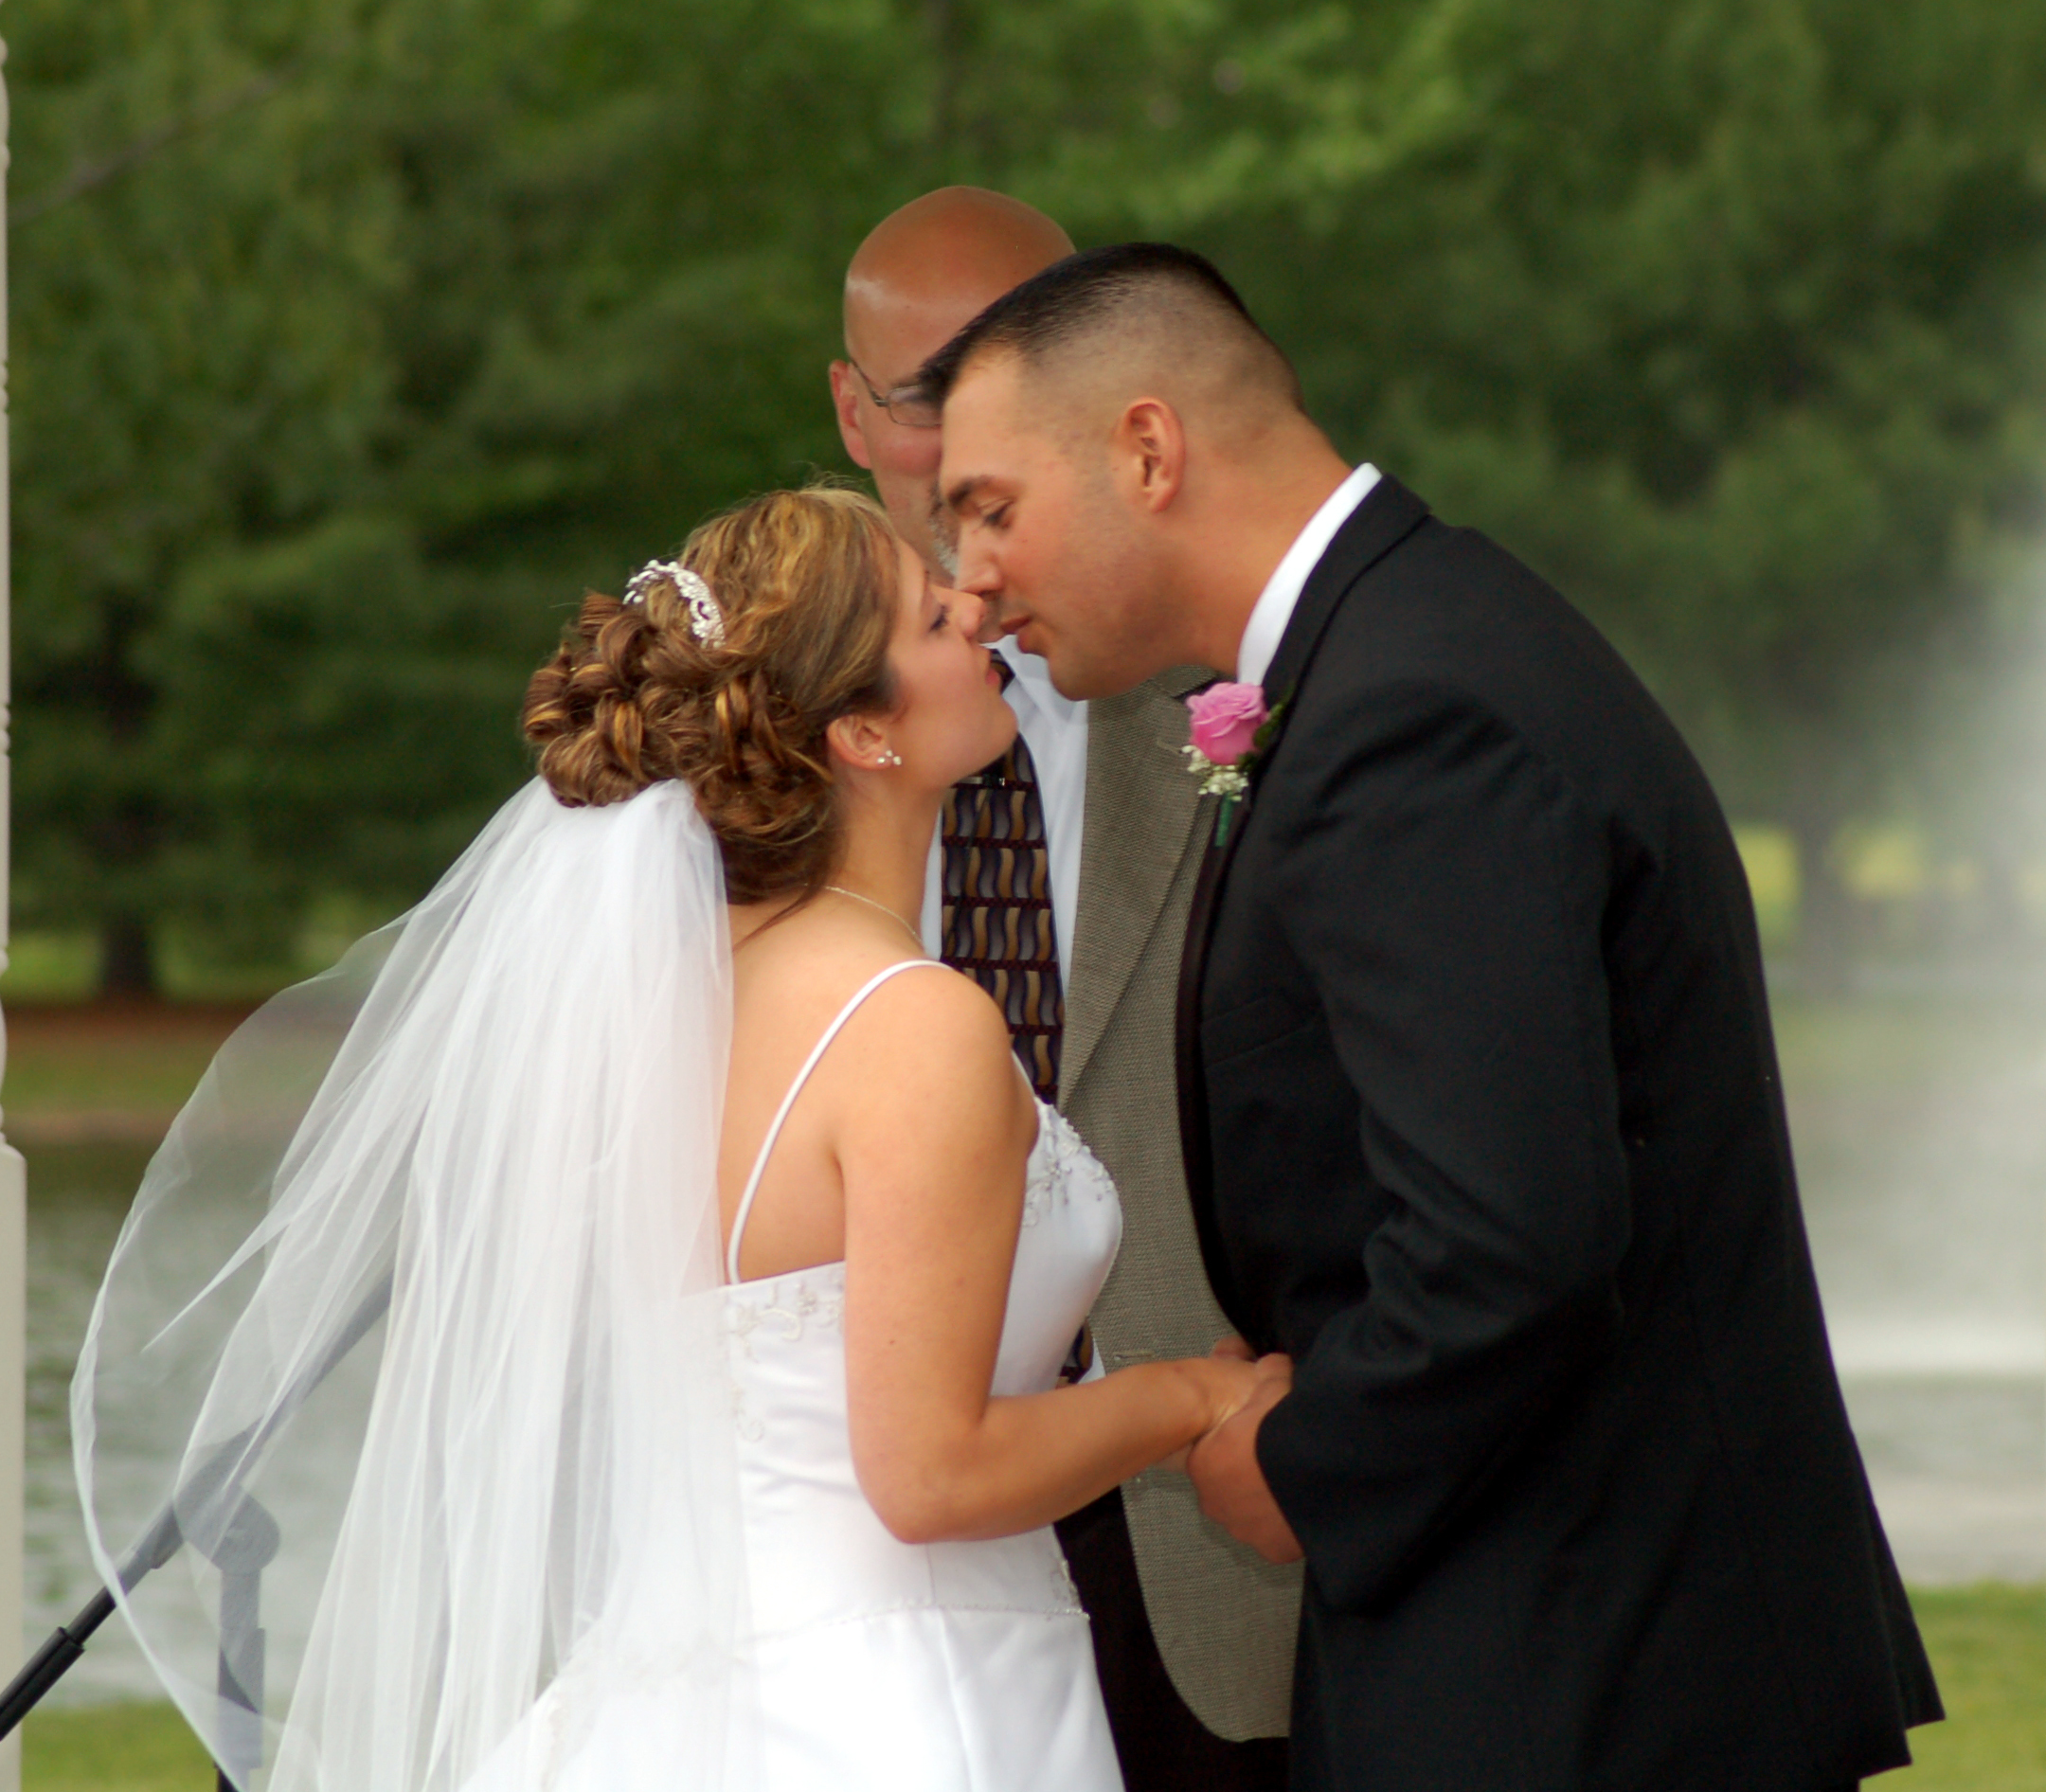 Bride, Groom, Wedding, And, At, Kissing, Donald pope photography